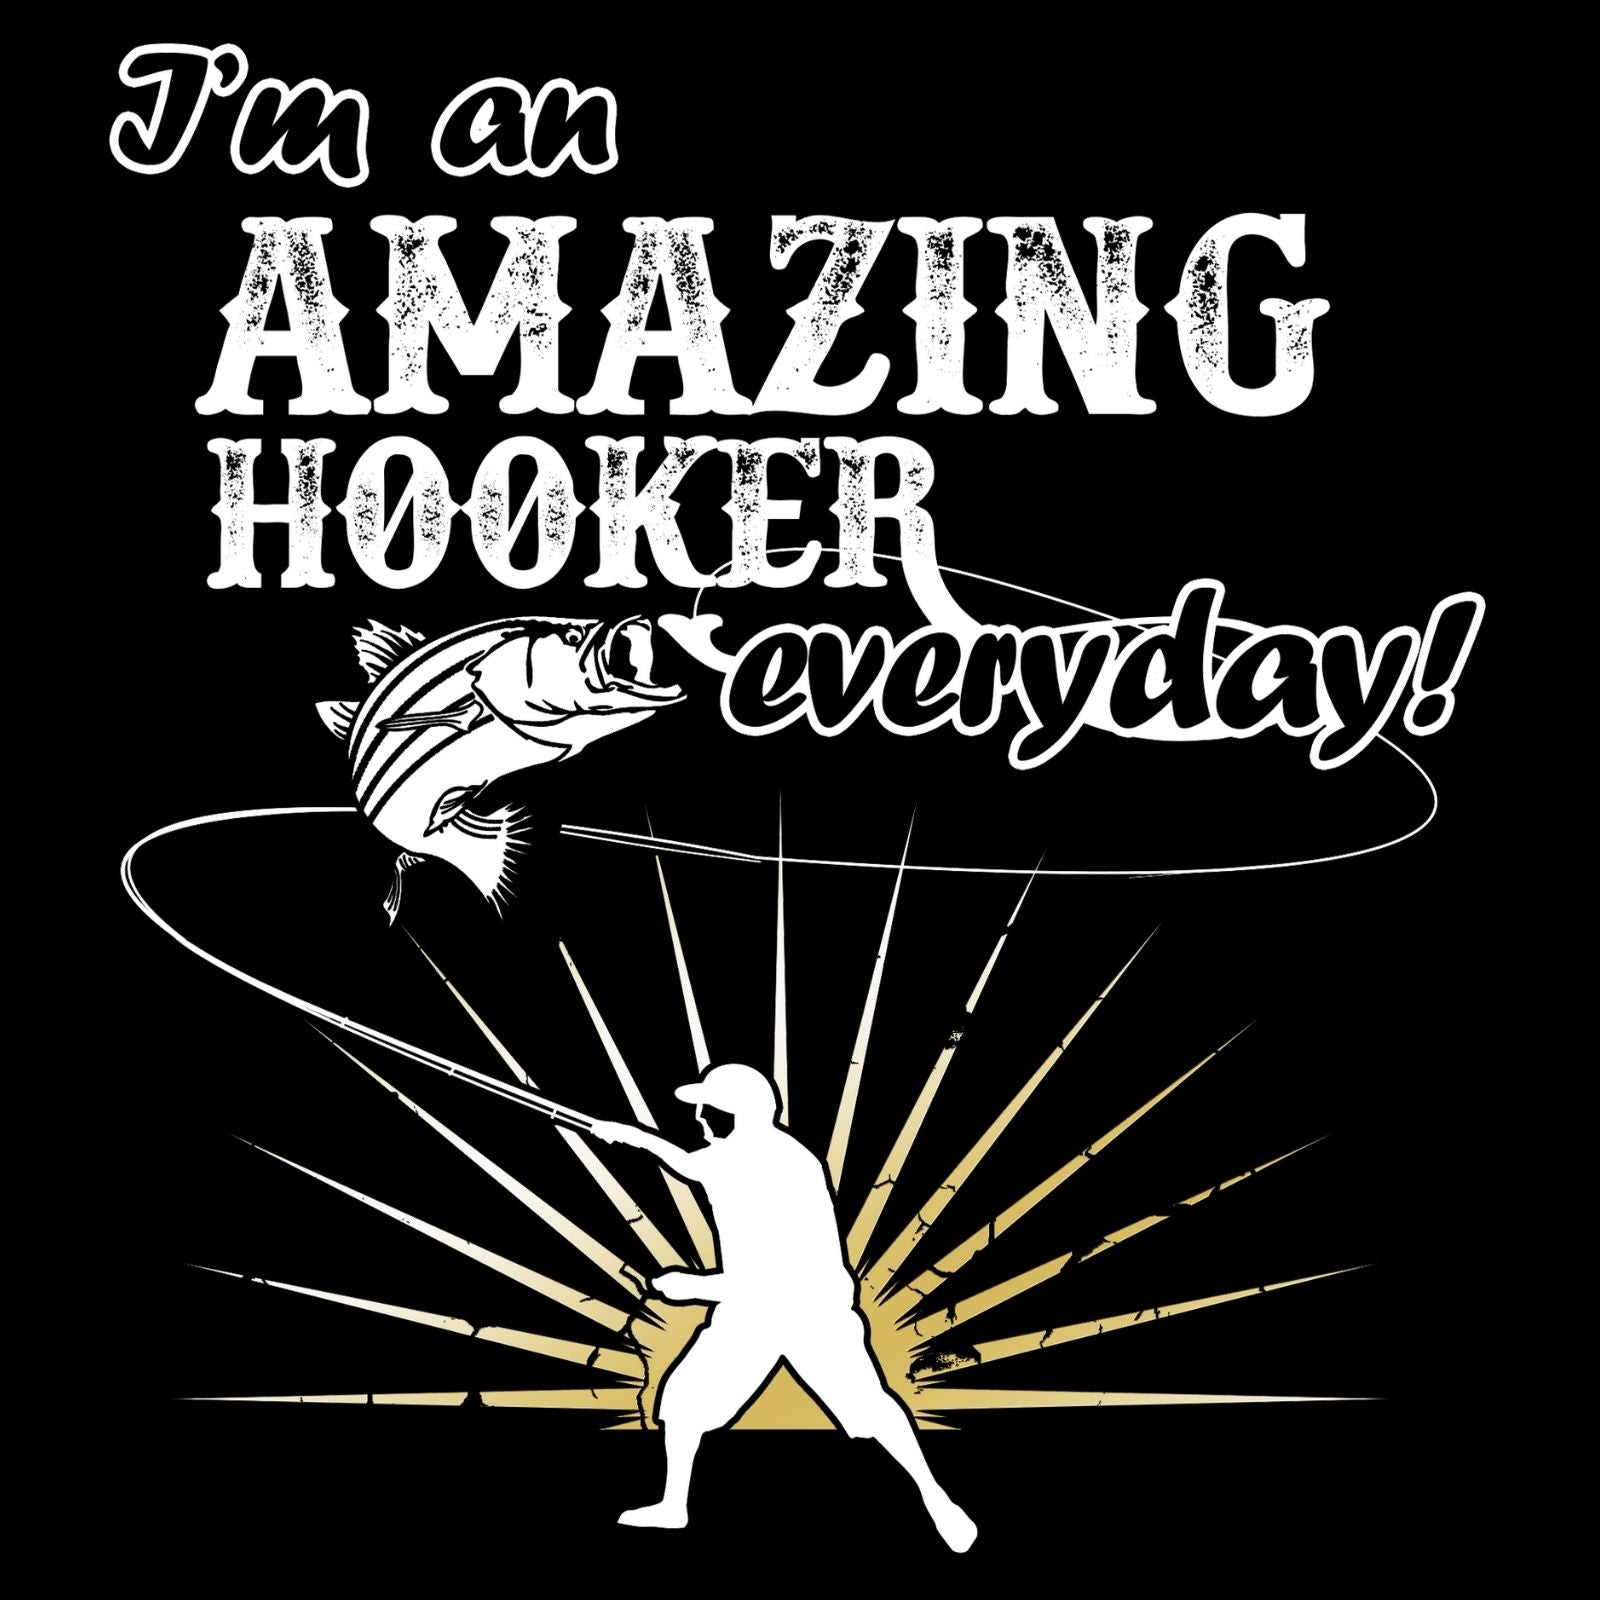 I'm An Amazing Hooker Every Day! - Bastard Graphics